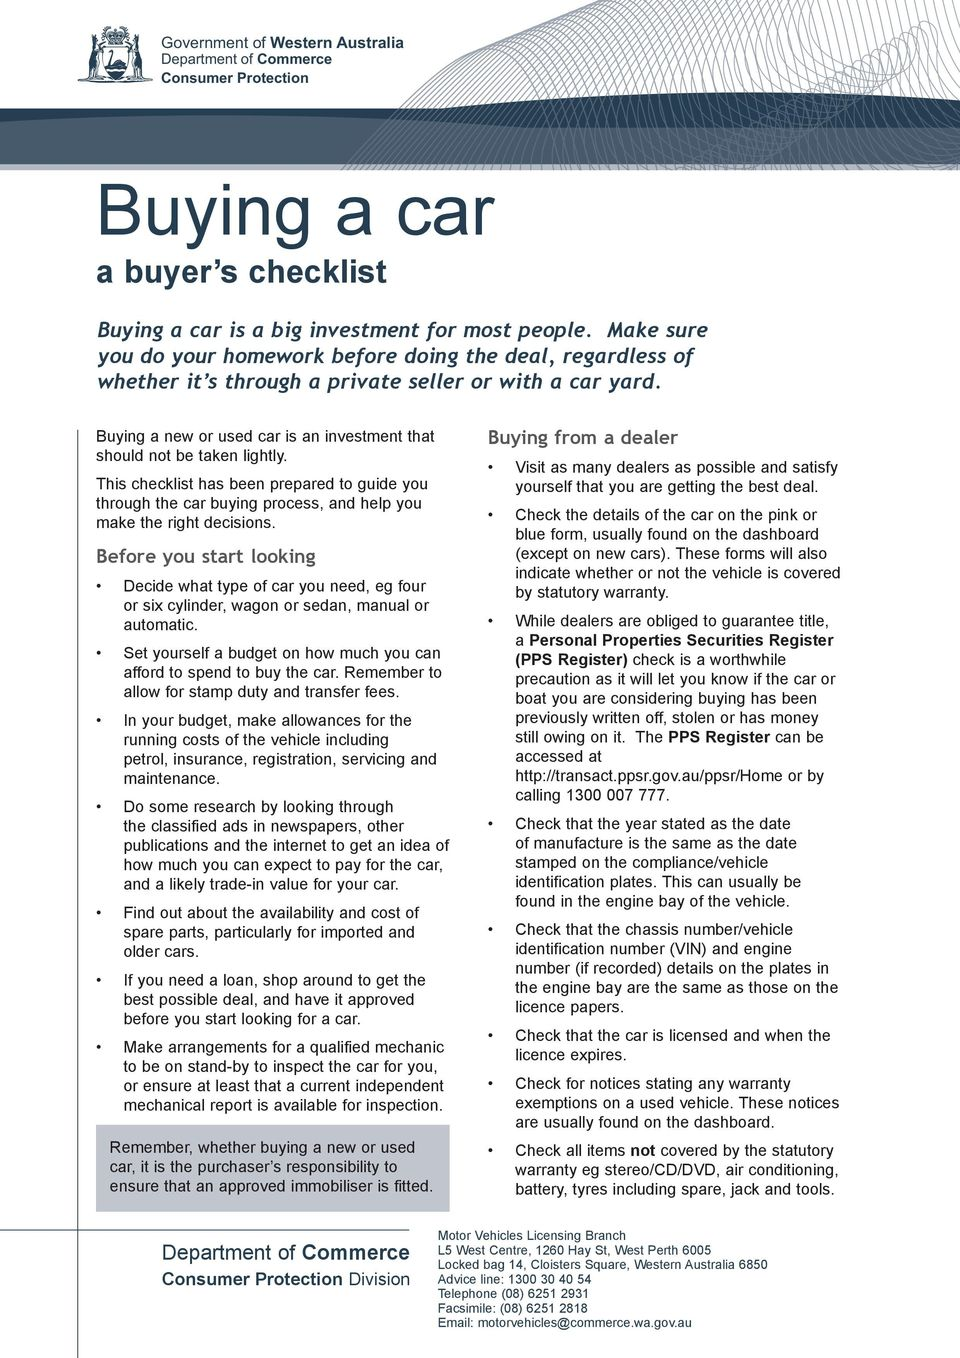 Used Car Buying Checklist >> Buying A Car A Buyer S Checklist Pdf Free Download